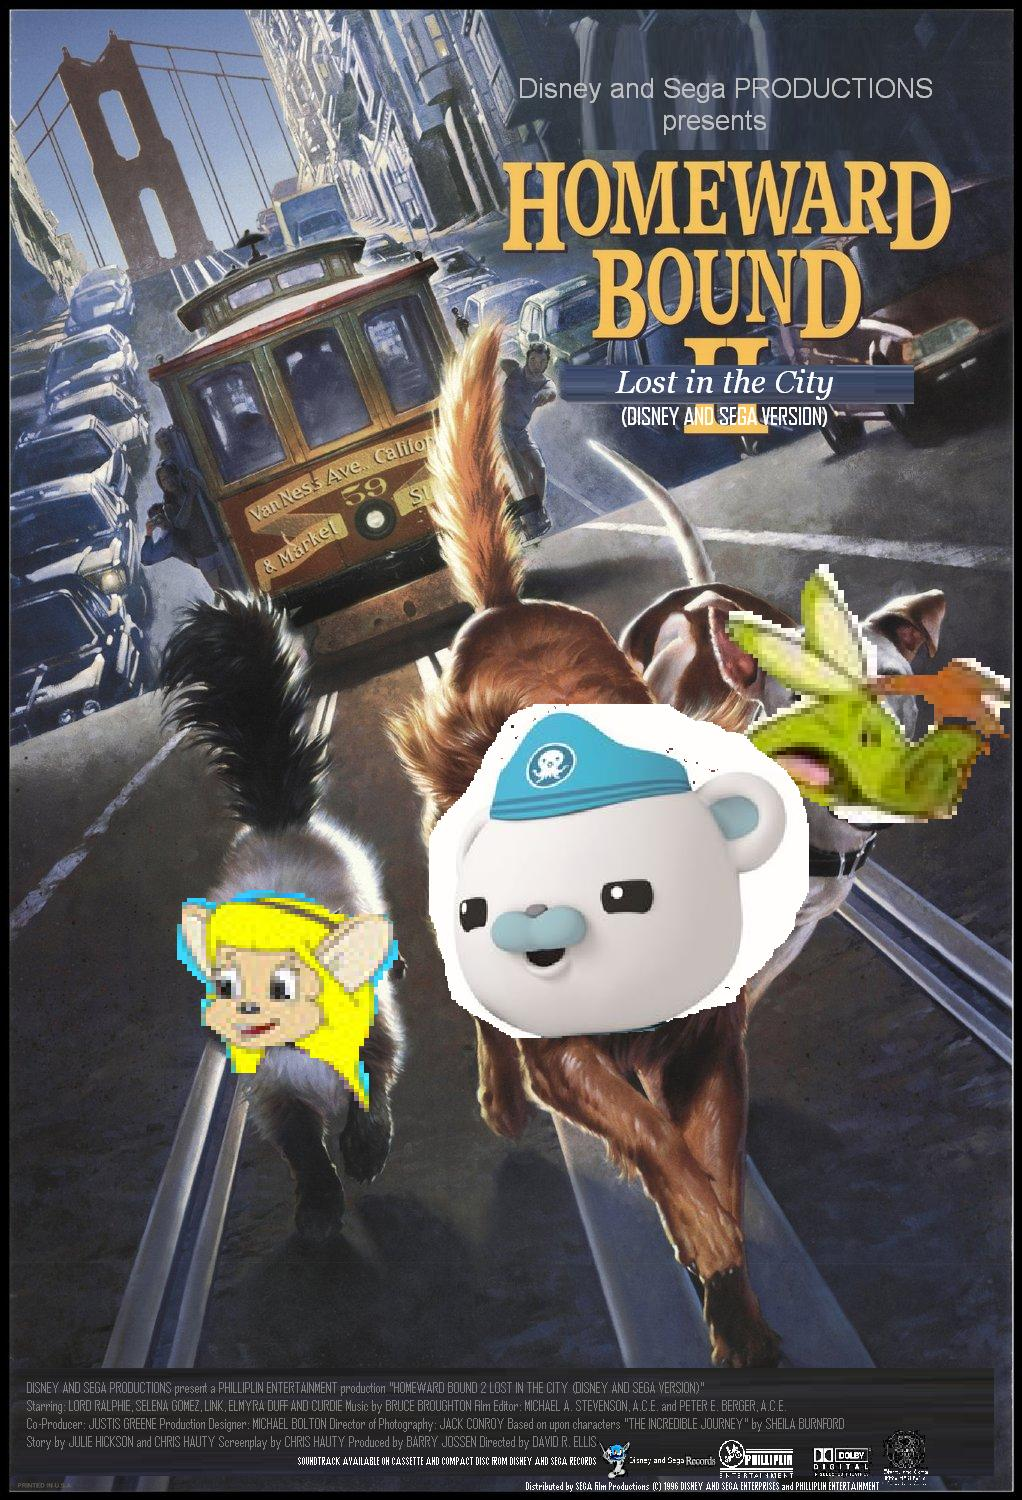 Homeward Bound 2 Lost in the City (Disney and Sega Version)